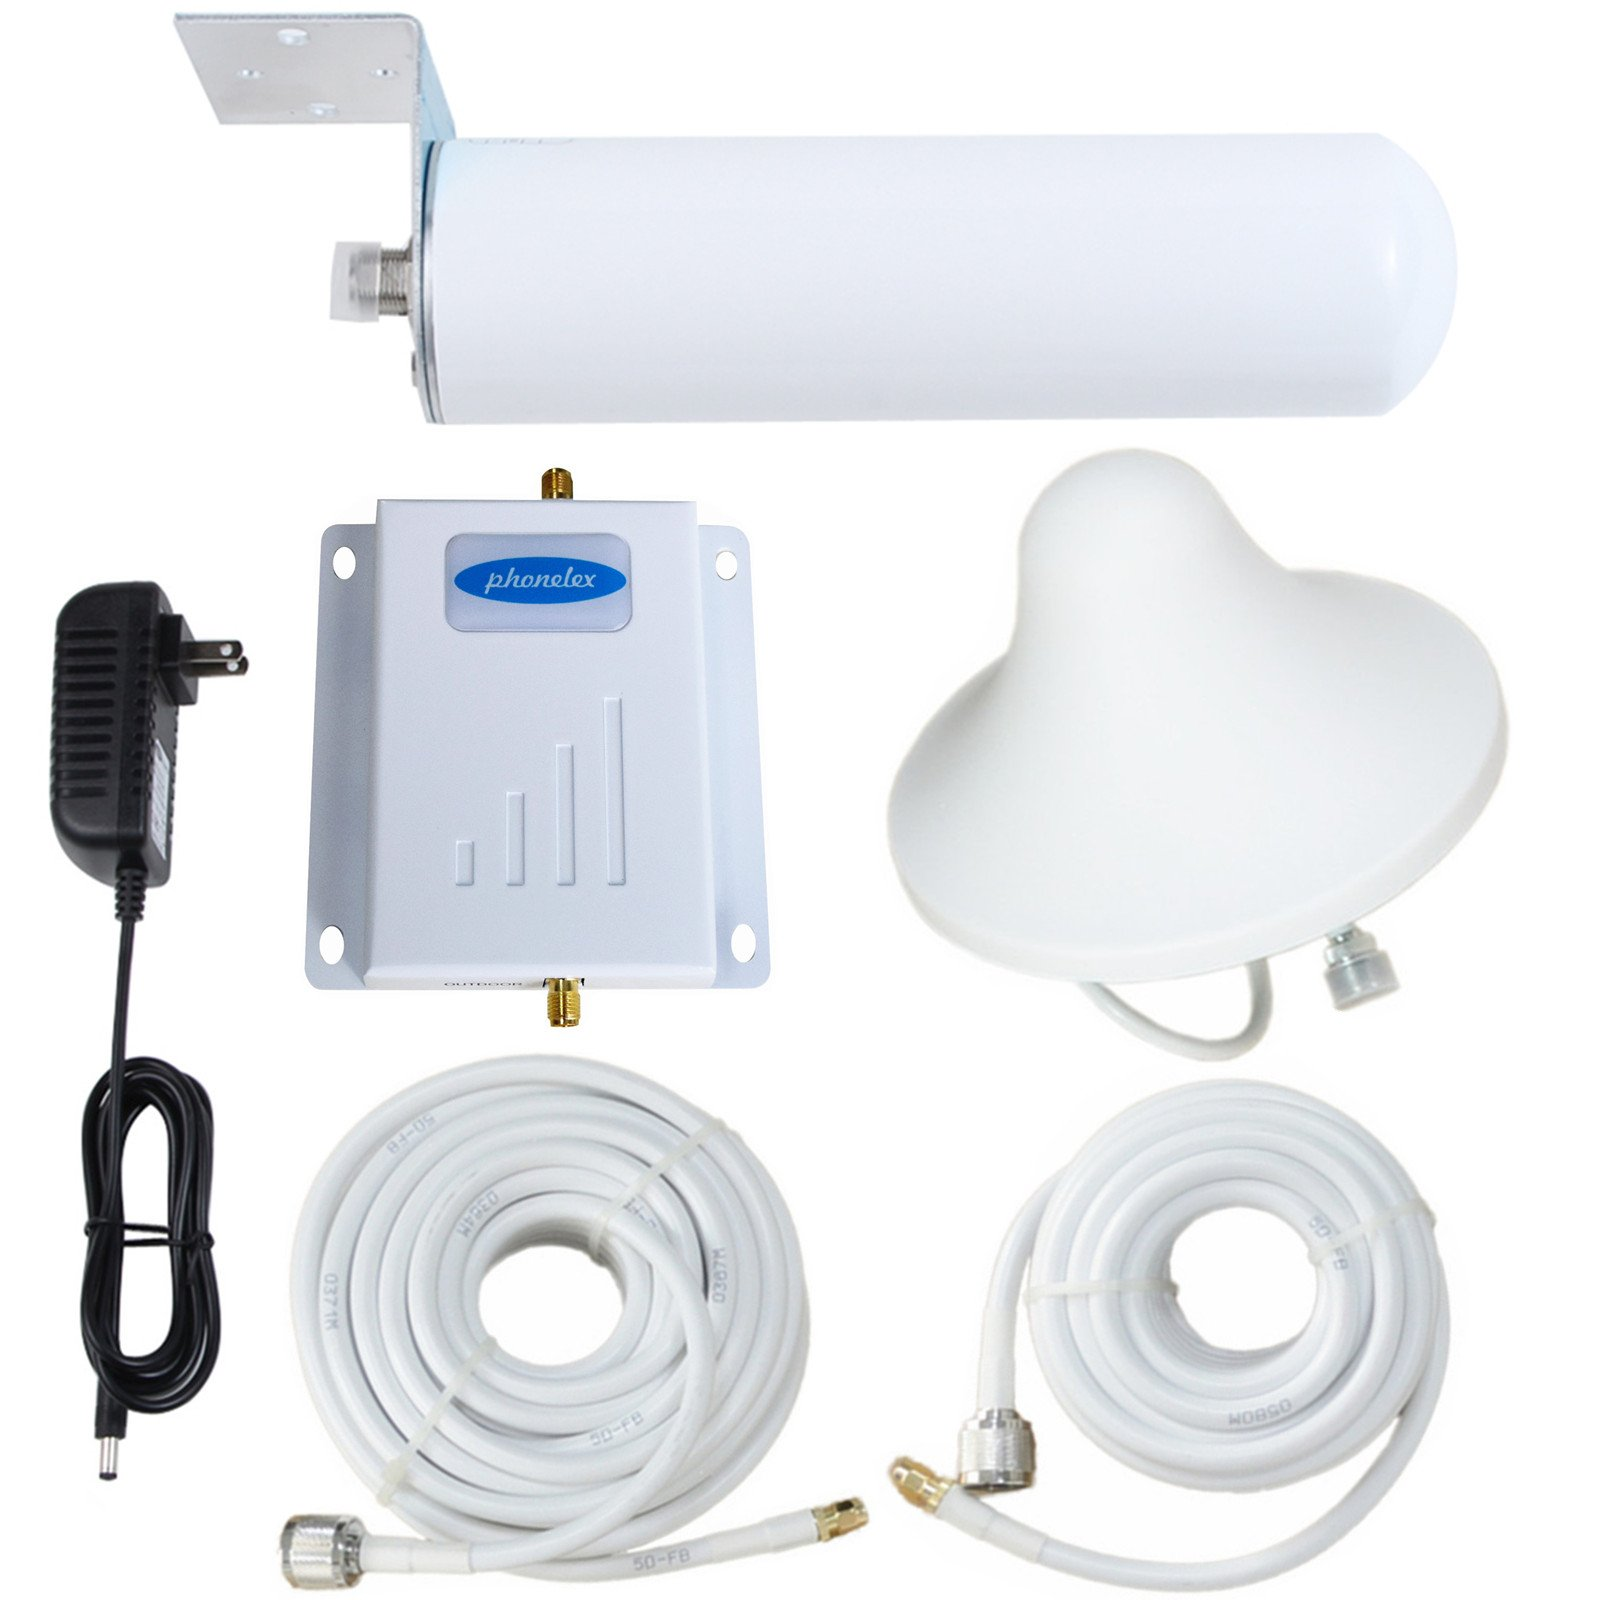 Phonelex 3G 4G LTE Mobile Phone Signal Booster T-Mobile AT&T AWS MetroPCS Band4 1700Mhz Cell Ampliifer Repeater With Indoor Ceilling and Outdoor Omni-Directional Atennas Kits Cable For Home Basement